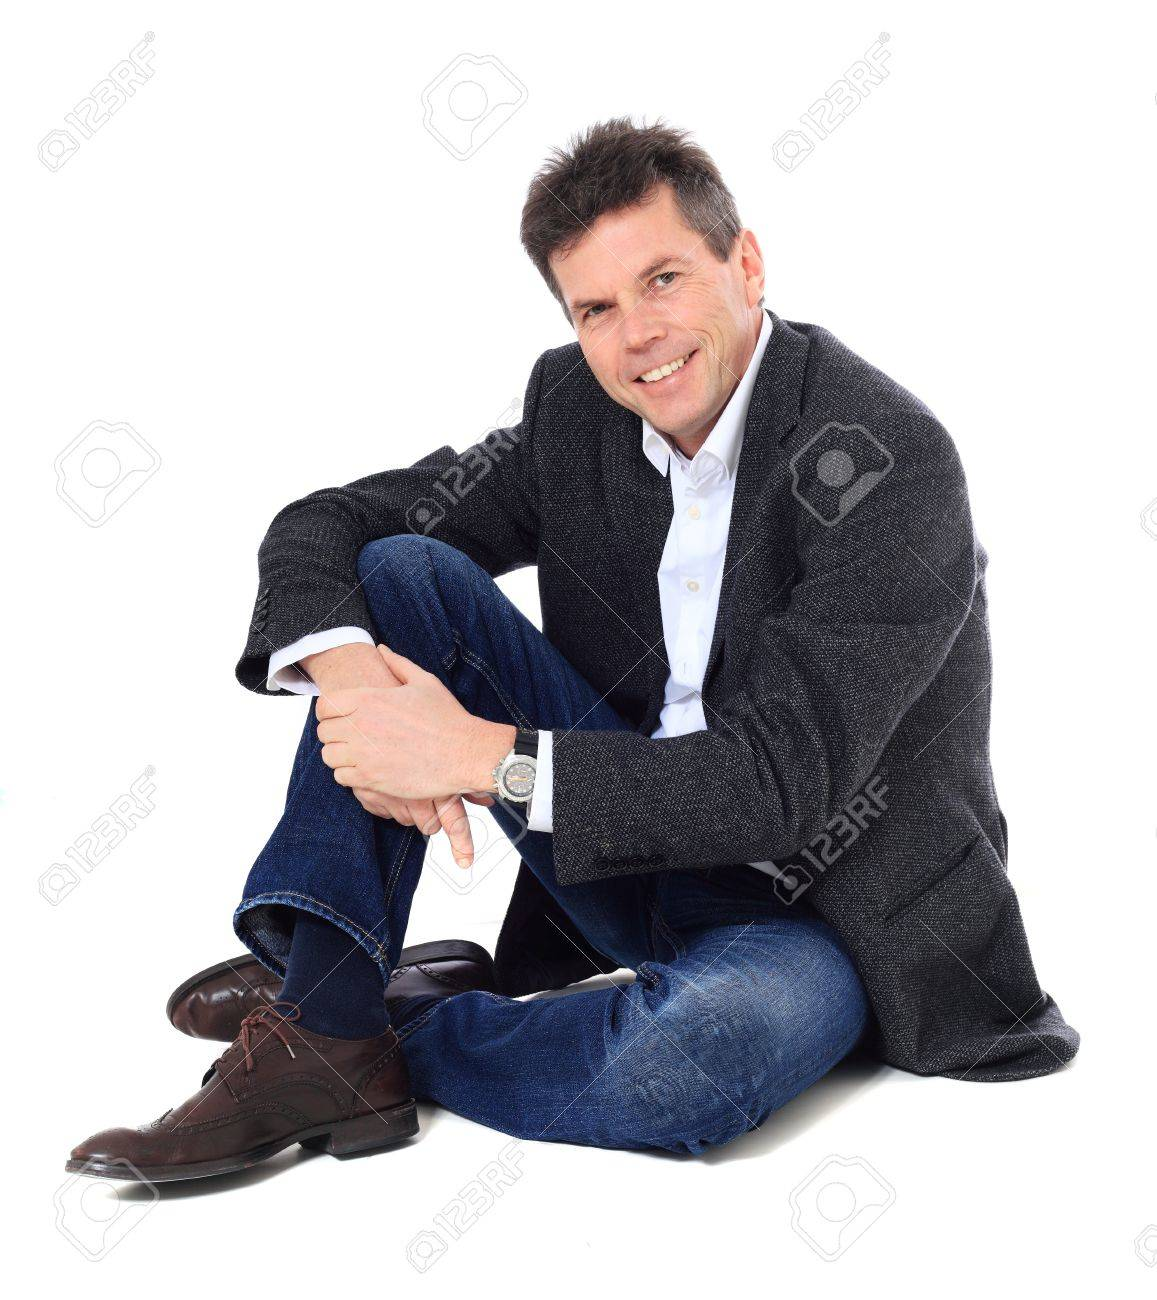 Attractive middle-aged man. All on white background. Stock Photo - 8824934